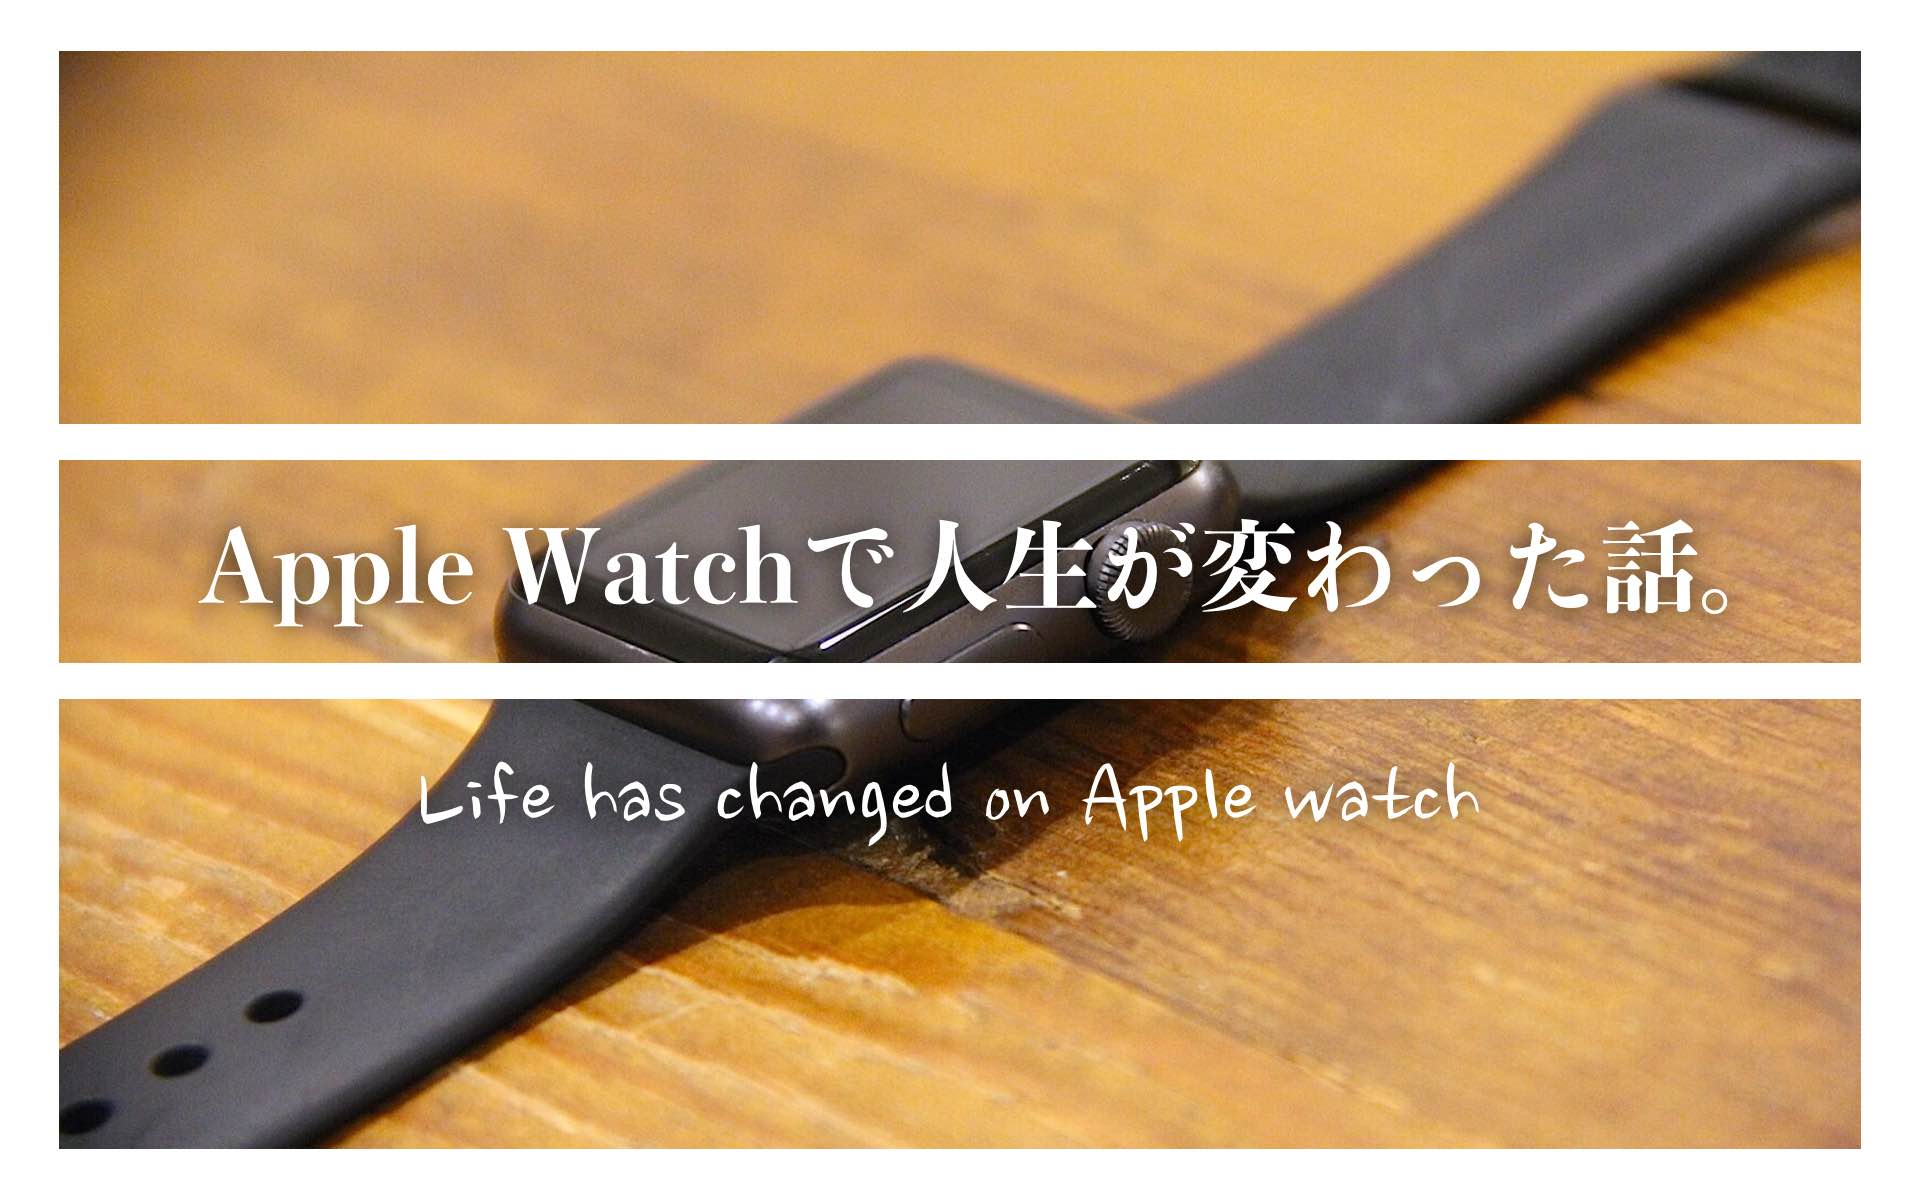 AppleWatchで人生が変わった話の画像